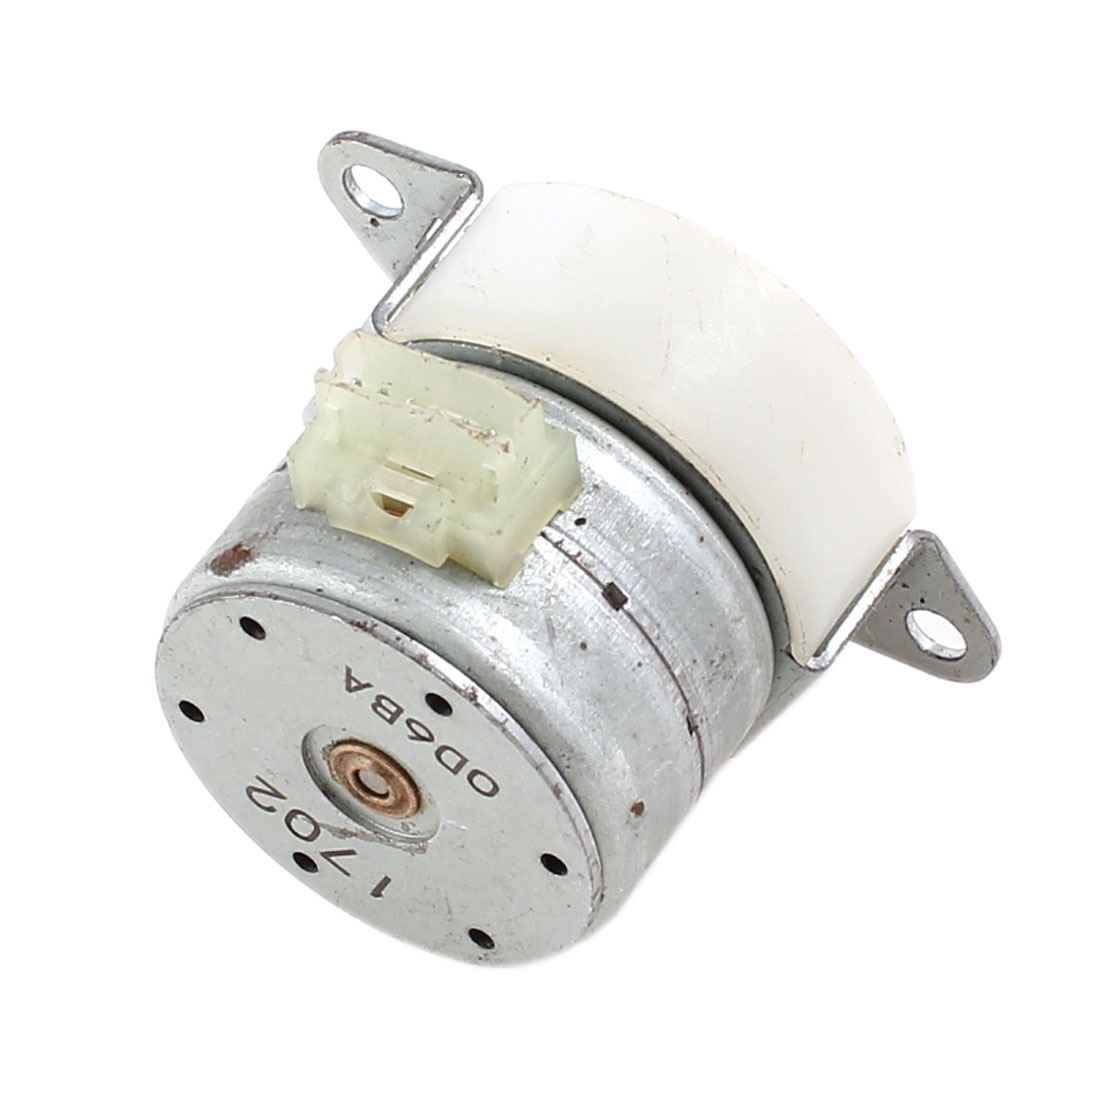 3mm Shaft 4500RPM Speed Electric Stepper Stepping Motor Reduction Ratio 1:12